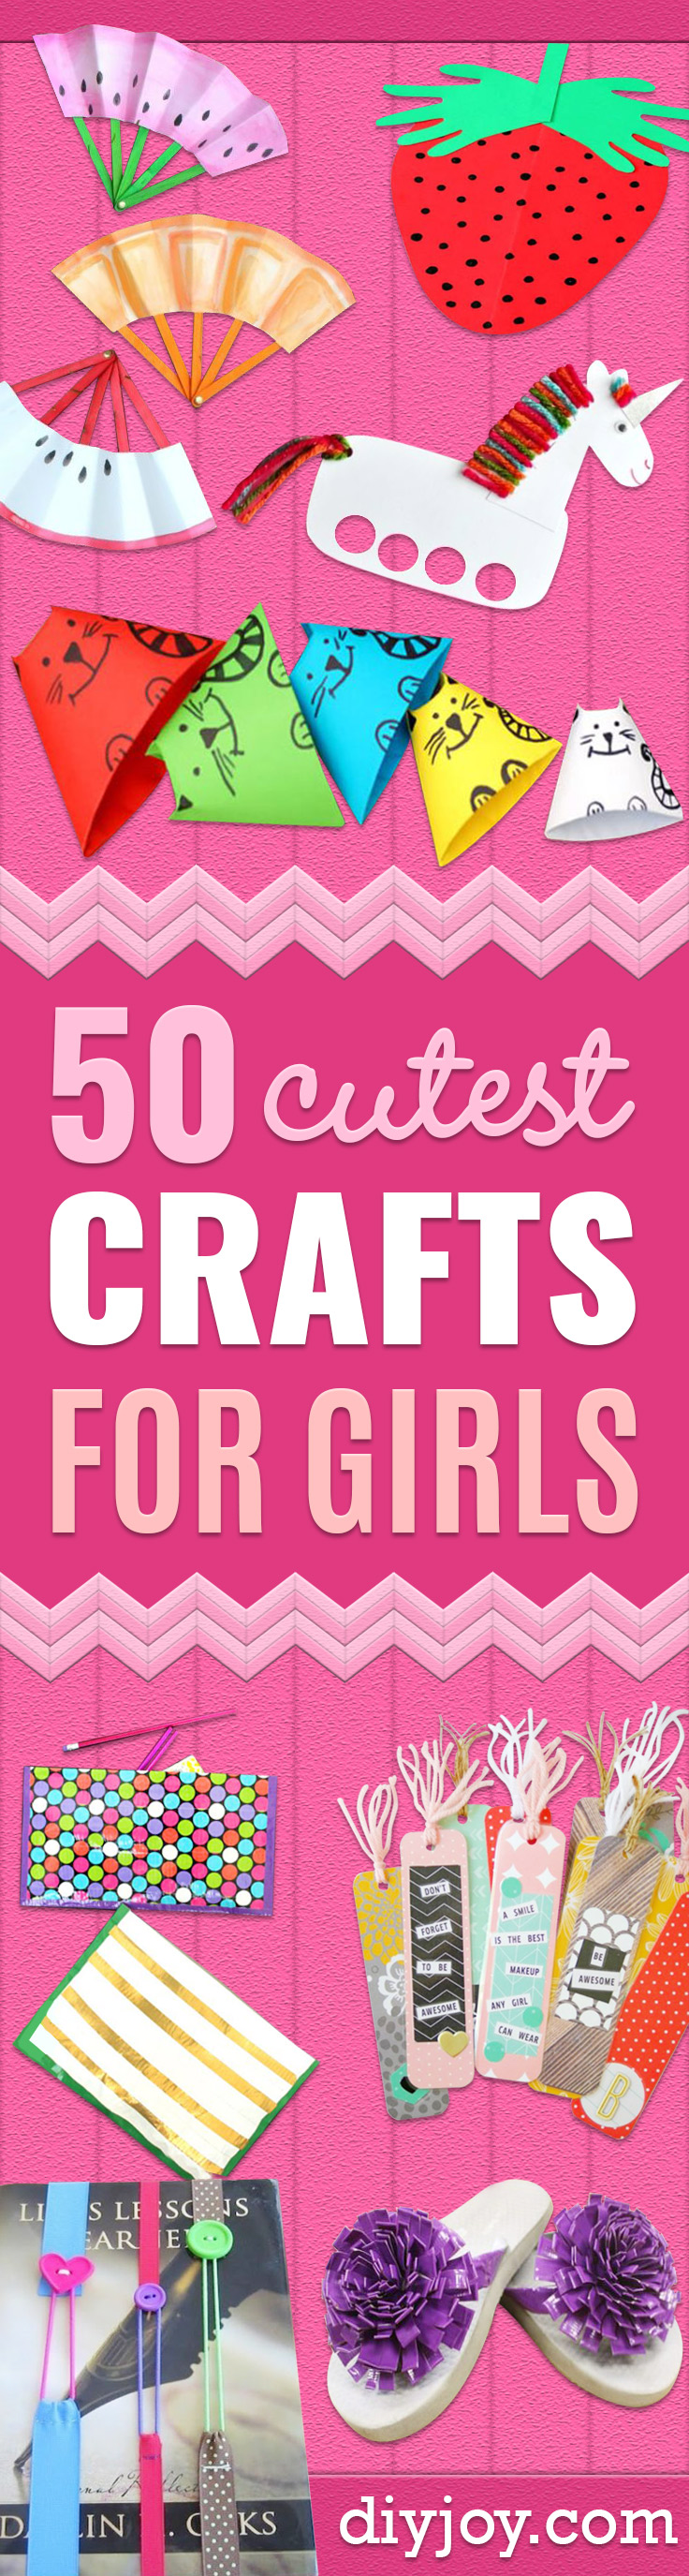 Crafts for Girls - Cute Crafts for Young Girls, Toddlers and School Children - Fun Paints to Make, Arts and Craft Ideas, Wall Art Projects, Colorful Alphabet and Glue Crafts, String Art, Painting Lessons, Cheap Project Tutorials and Inexpensive Things for Kids to Make at Home - Cute Room Decor and DIY Gifts